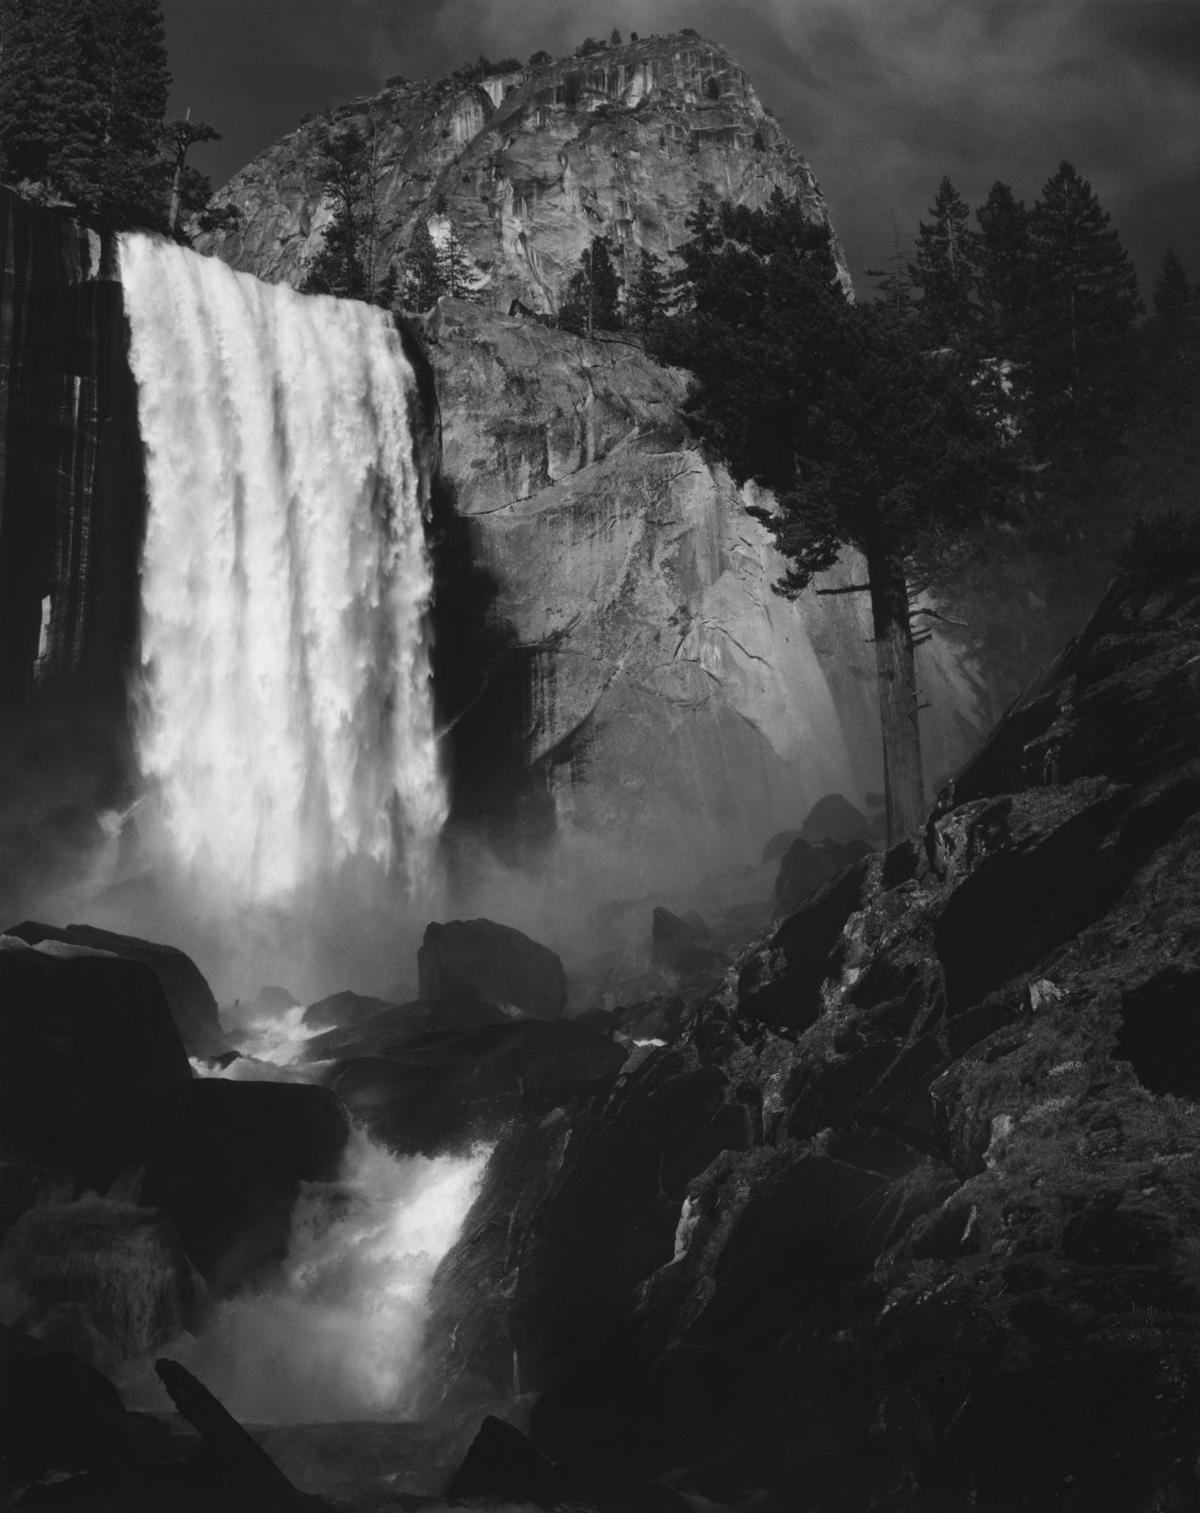 Ansel Adams show on display in Munster | Entertainment